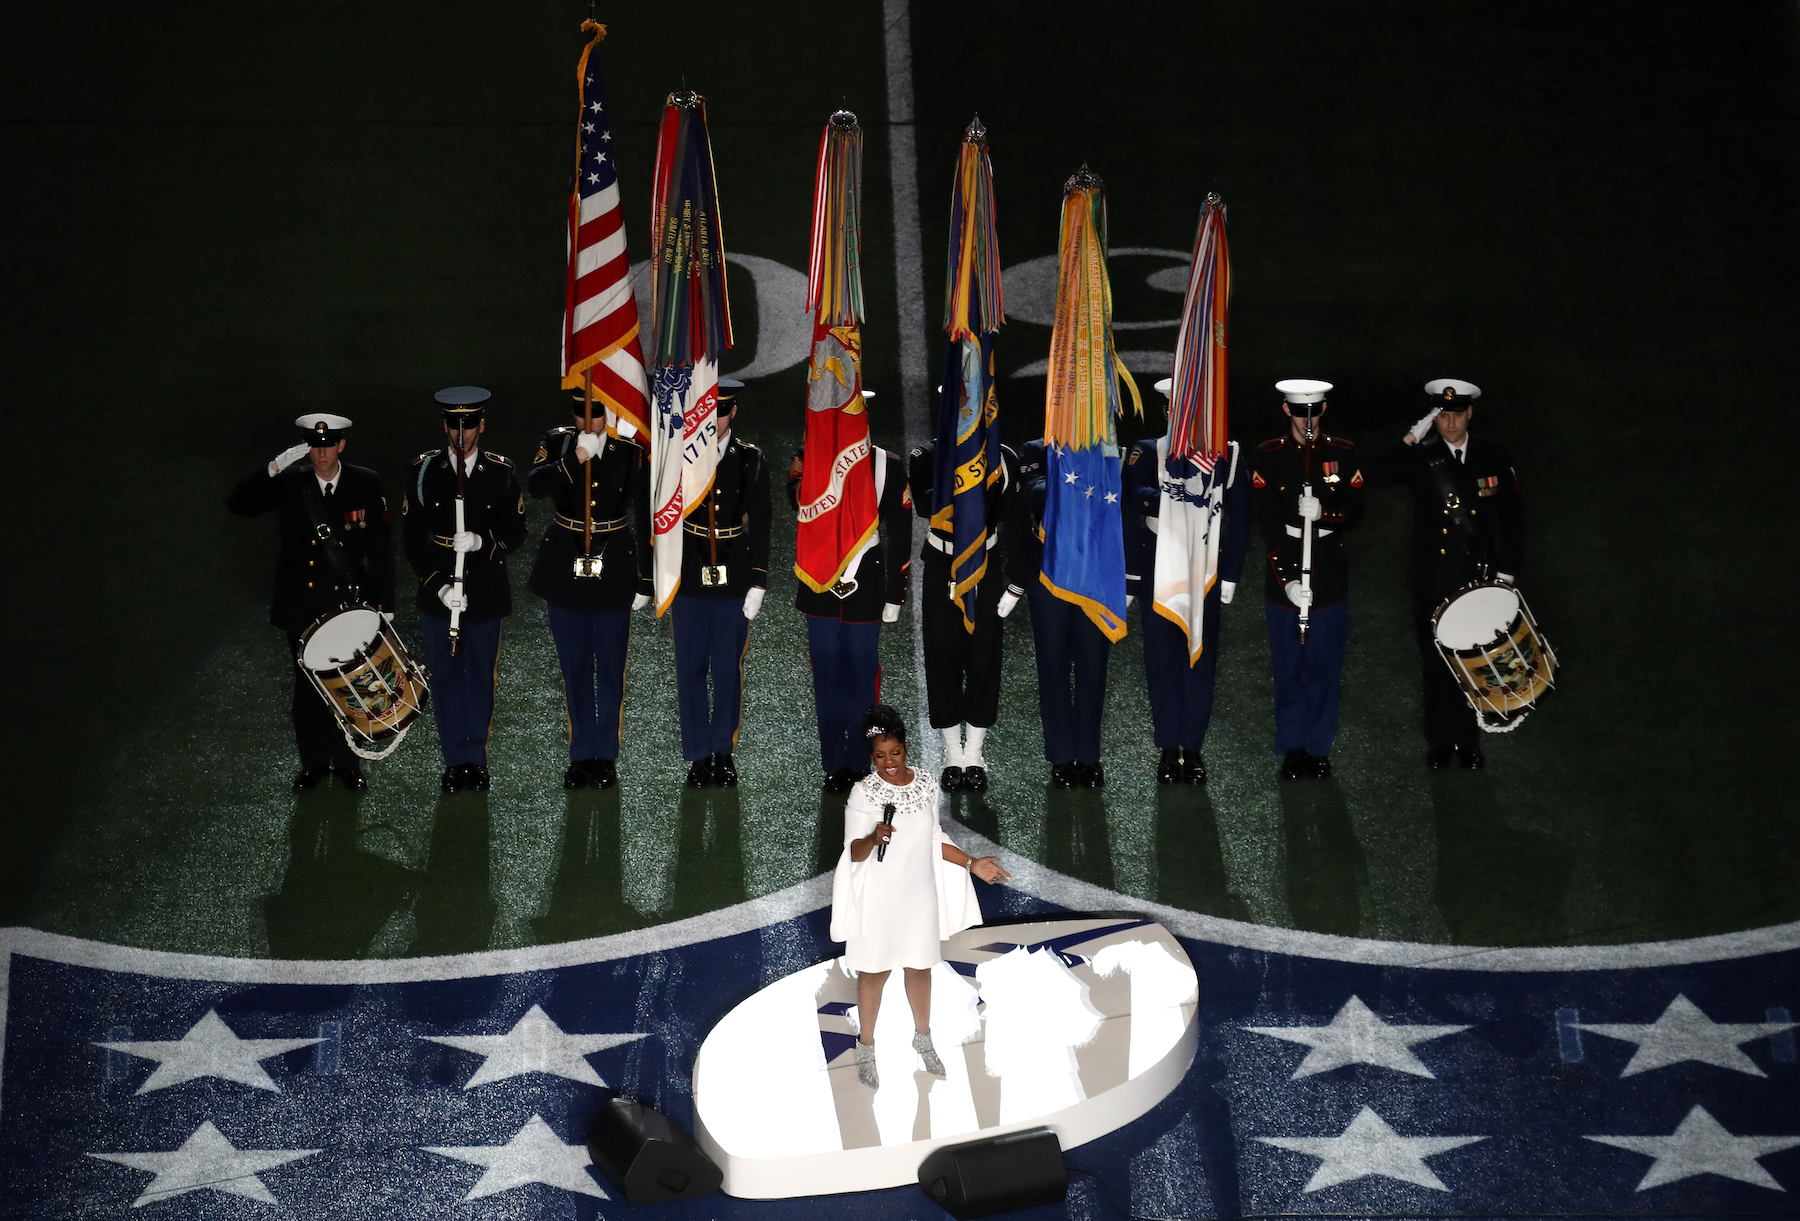 """<div class=""""meta image-caption""""><div class=""""origin-logo origin-image wabc""""><span>wabc</span></div><span class=""""caption-text"""">Gladys Knight performs the National Anthem prior to Super Bowl LIII between the New England Patriots and the Los Angeles Rams at Mercedes-Benz Stadium on February 03, 2019. (Rob Carr/Getty Images)</span></div>"""